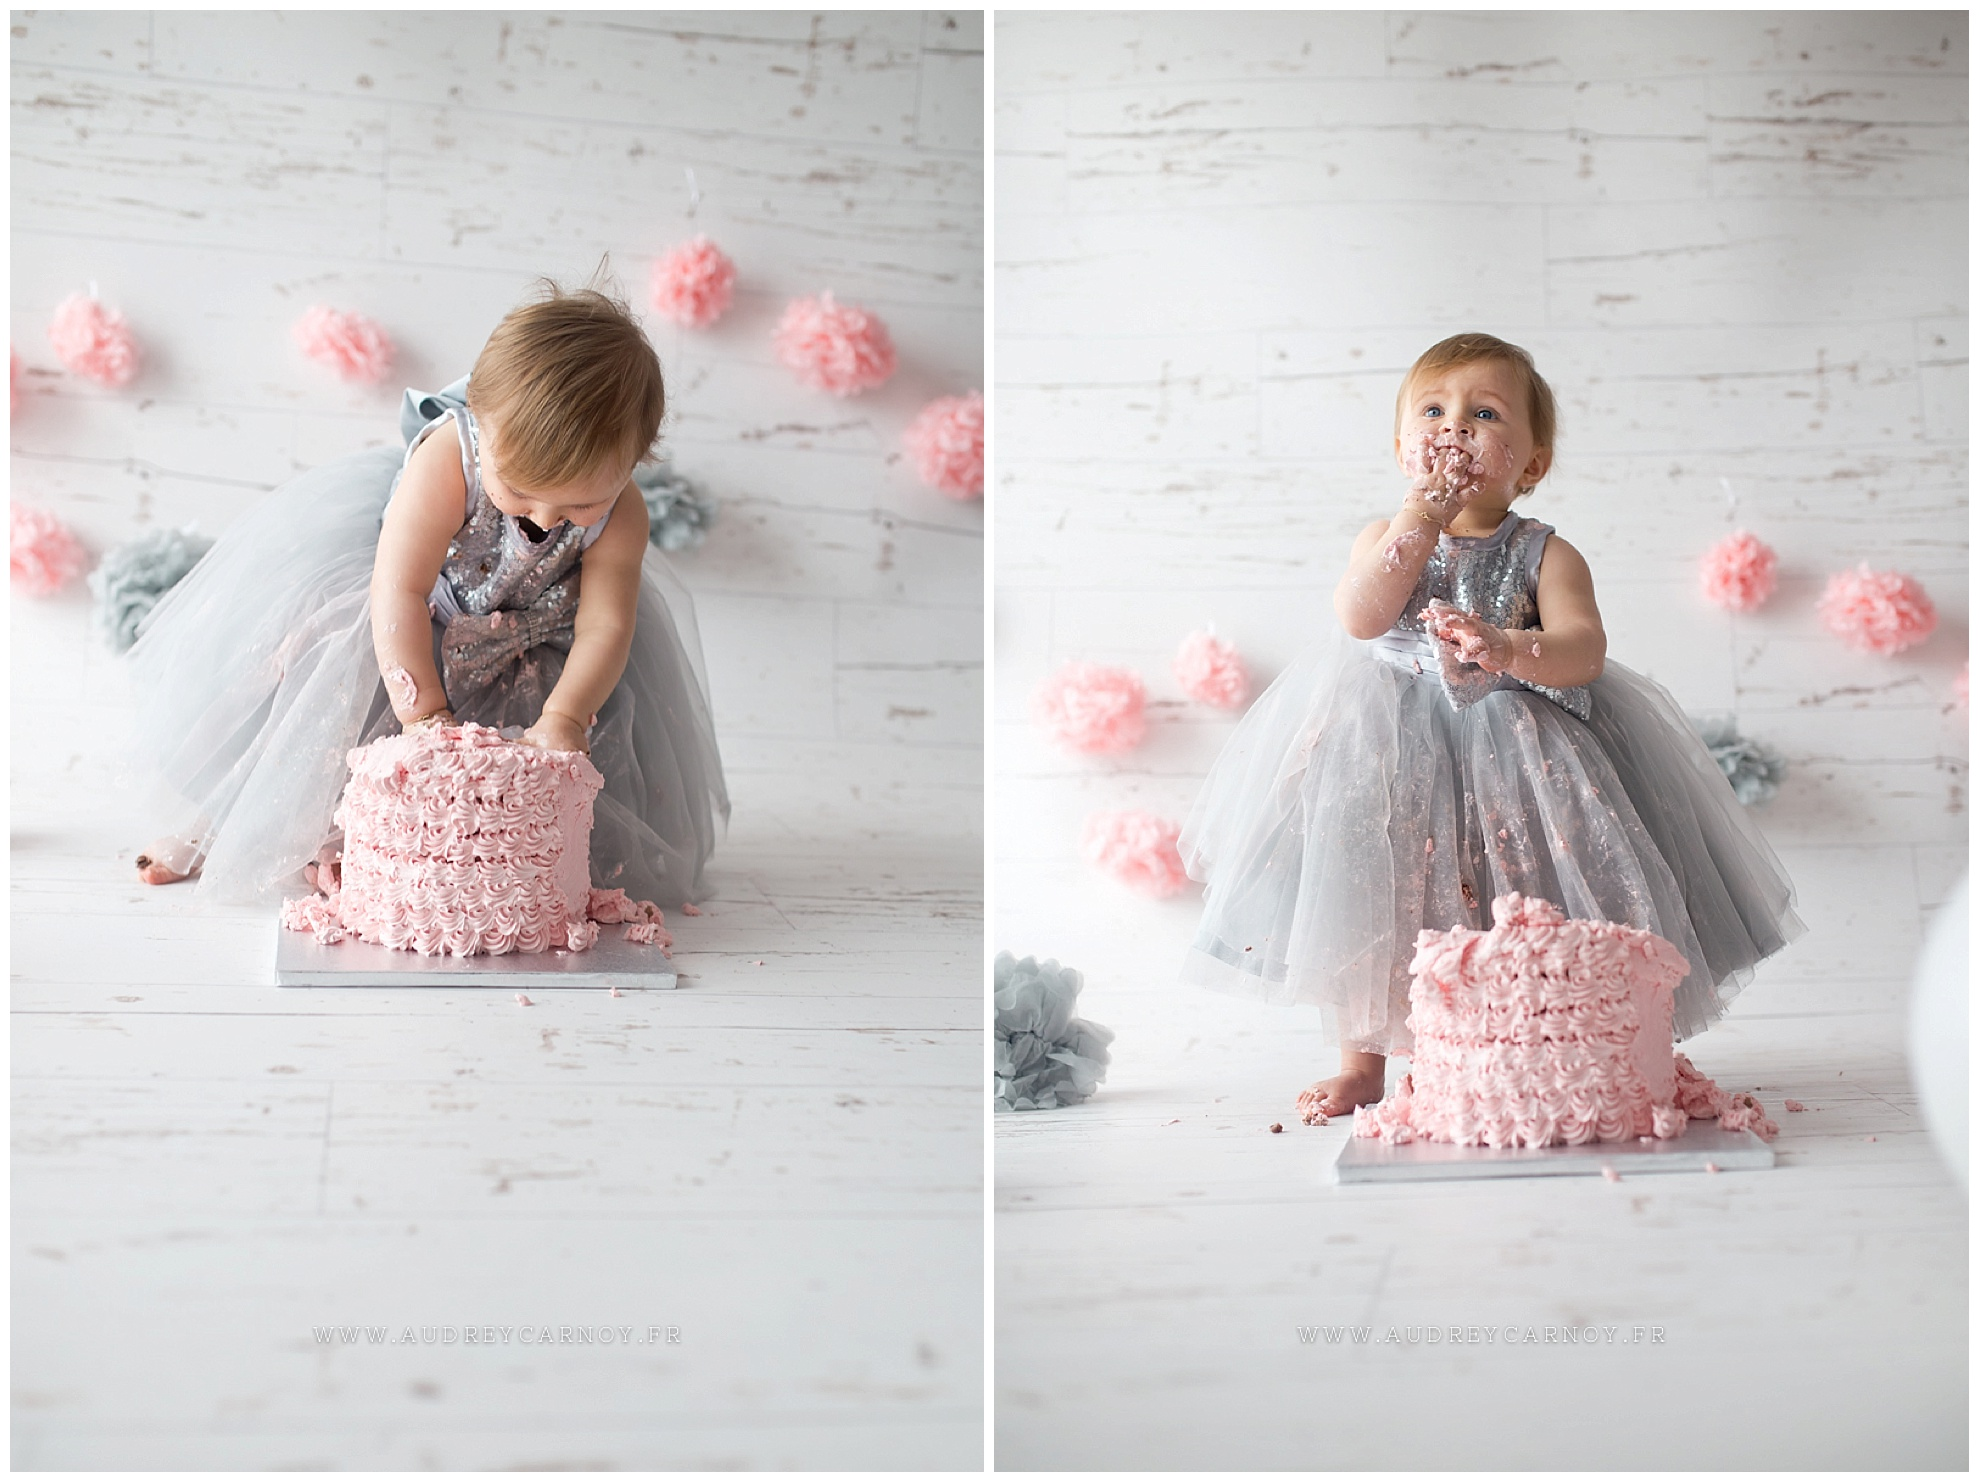 Smash the cake | Léana, 1 an 37